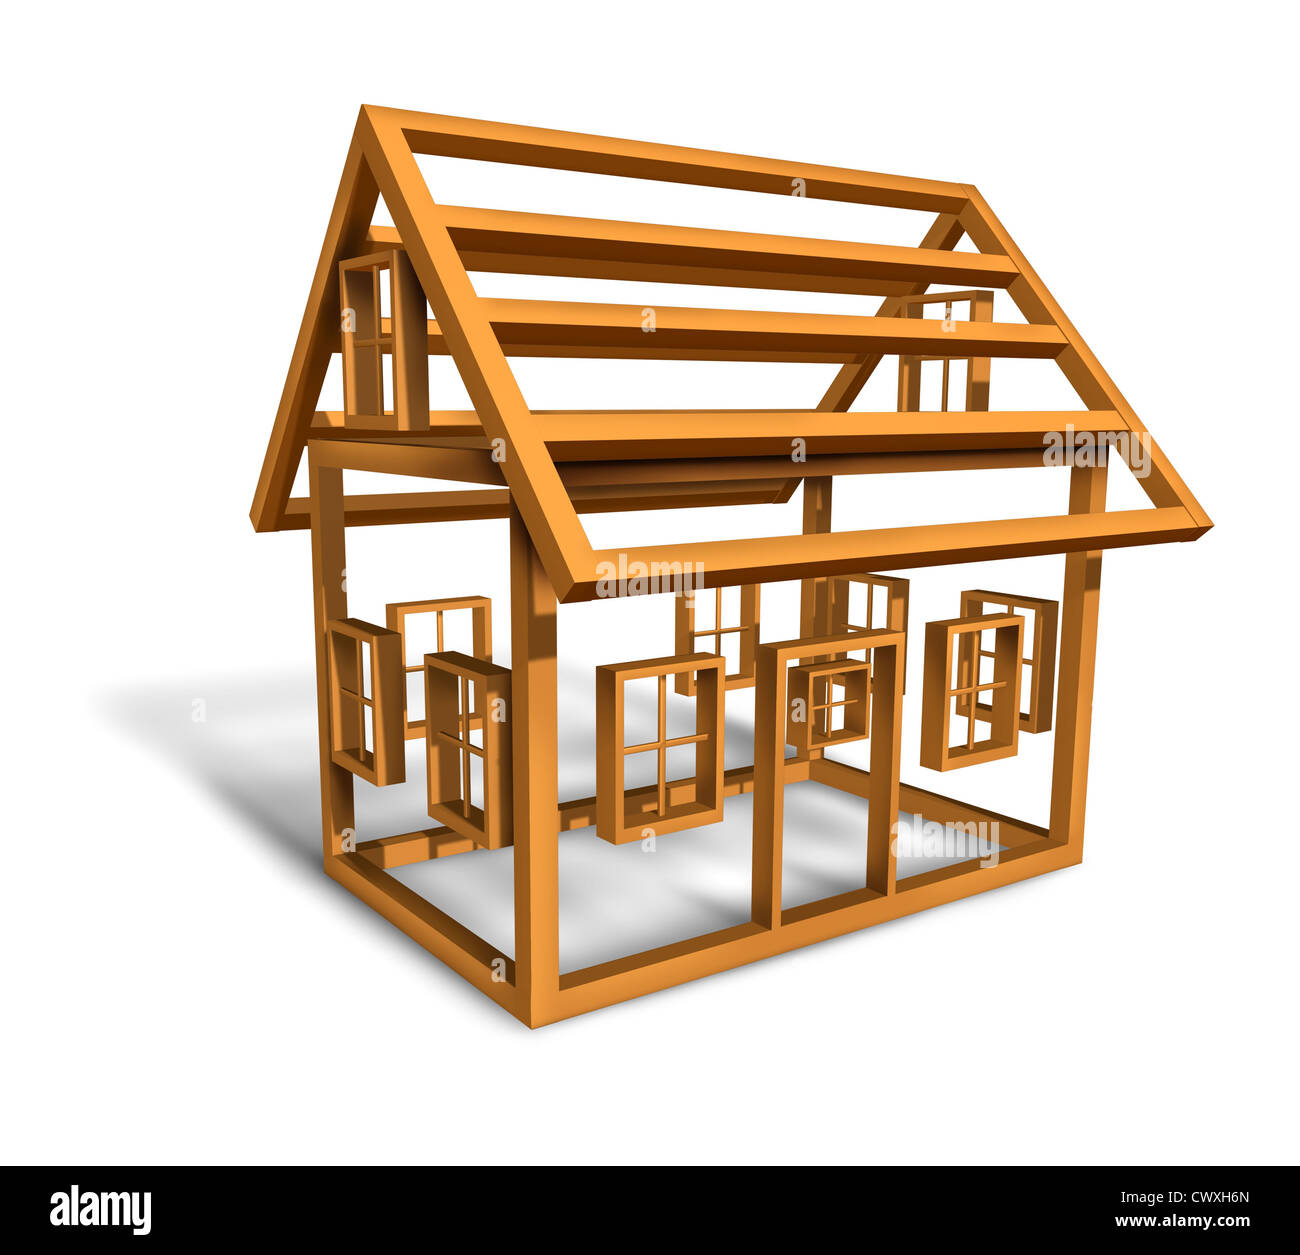 Attrayant Home Construction With The Wood Frame Structure Of A House Being Built In A  Working Site As A Builder Concept For The Housing And Real Estate Industry  On A ...